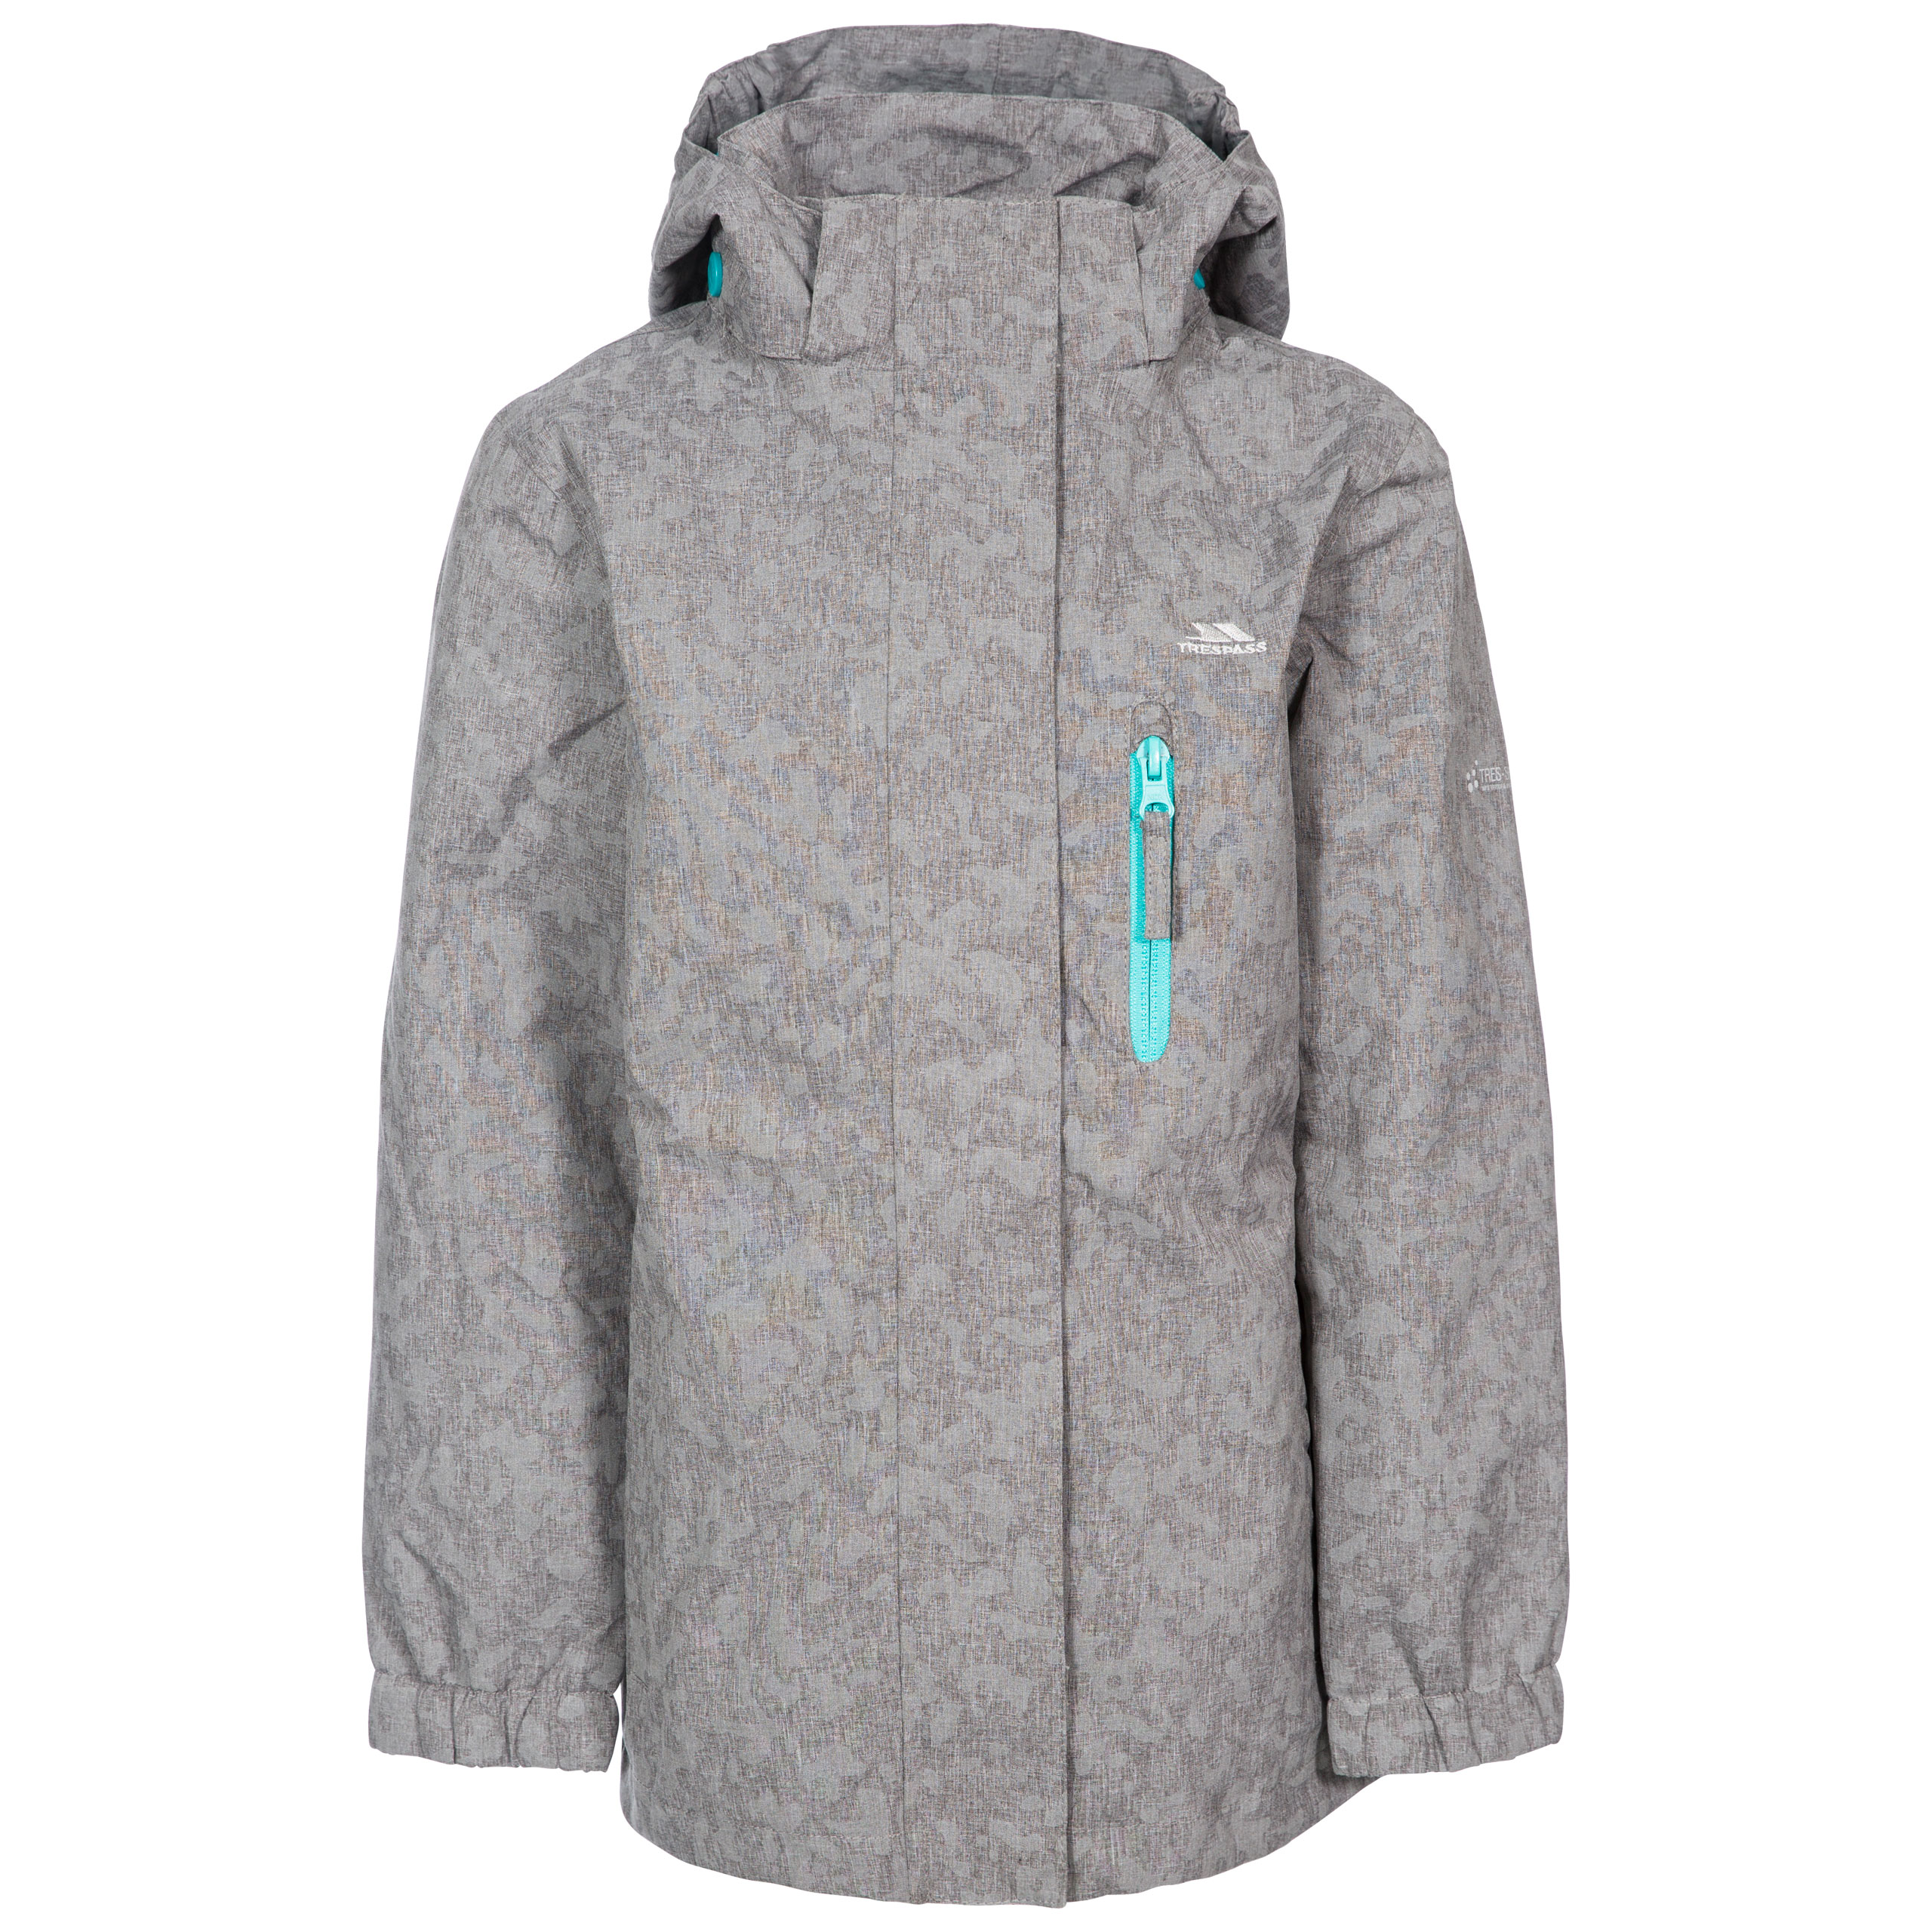 Trespass-Zoey-Girls-Waterproof-Reflective-Jacket-Rain-Coat-With-Hood thumbnail 4